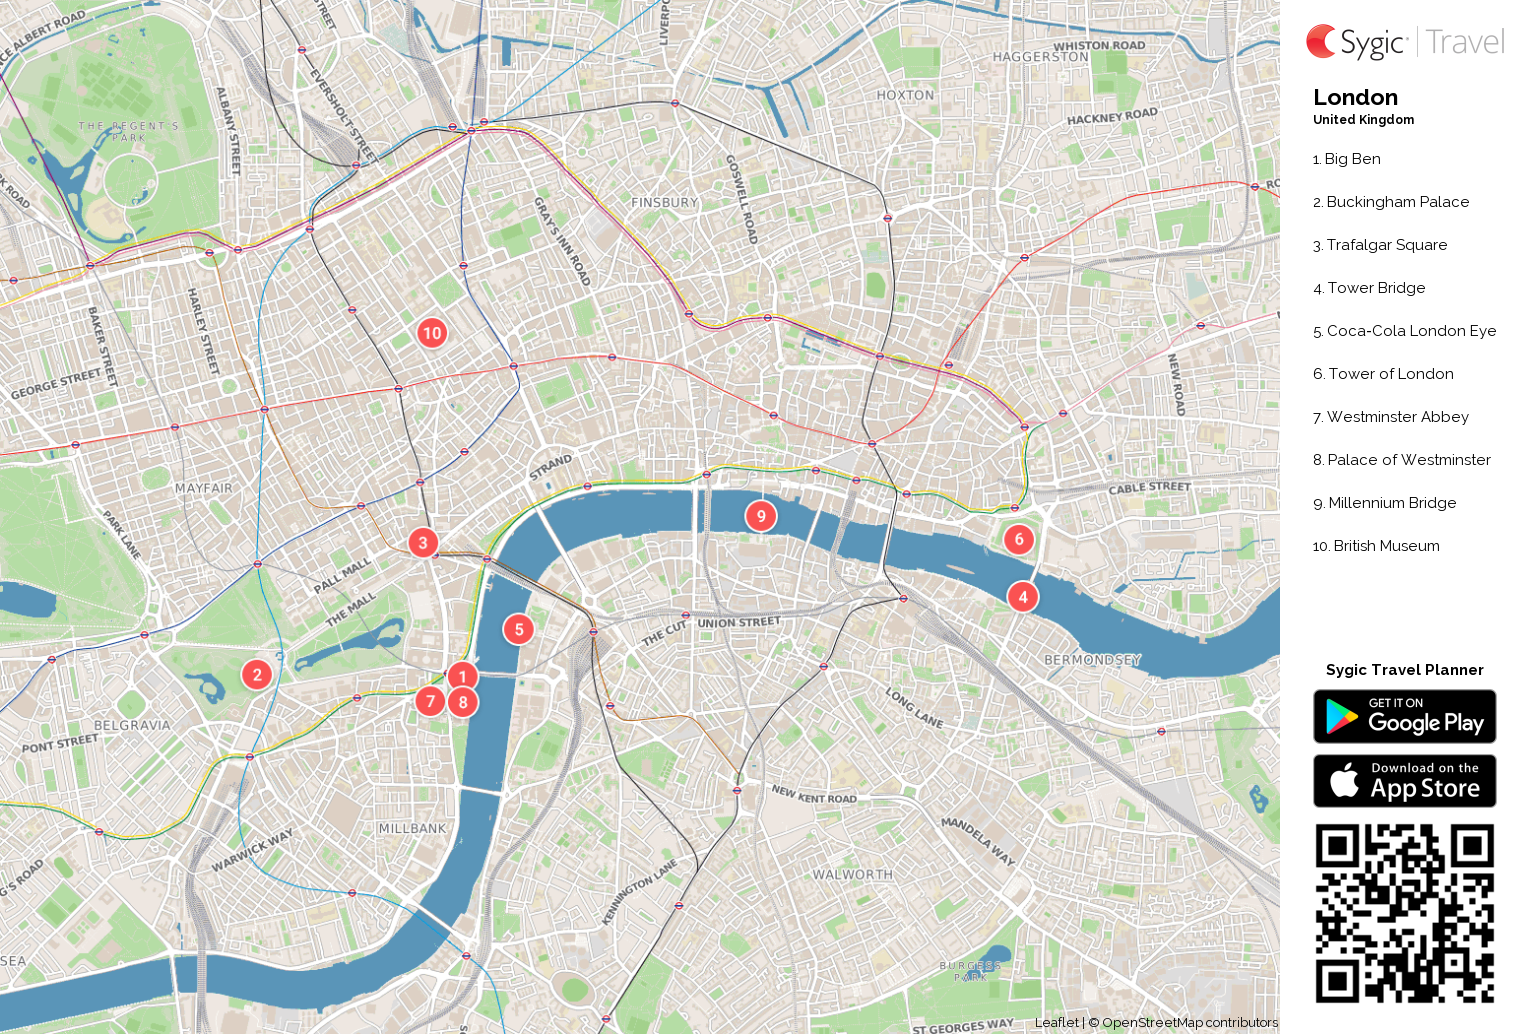 London Printable Tourist Map – London Tourist Maps